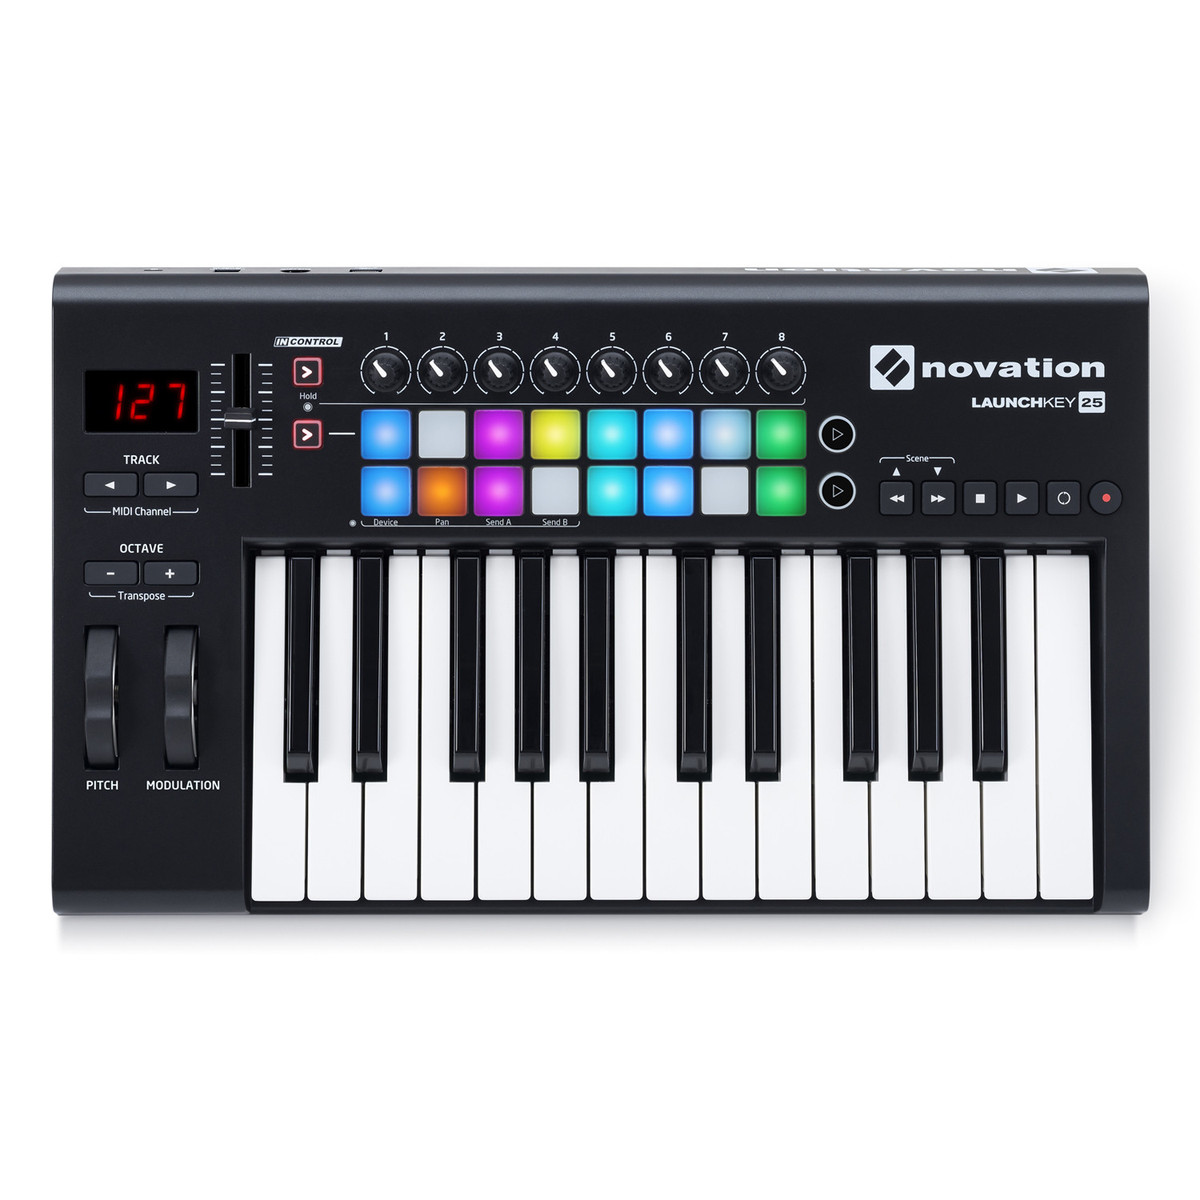 novation launchkey 25 mk2 midi controller keyboard at. Black Bedroom Furniture Sets. Home Design Ideas